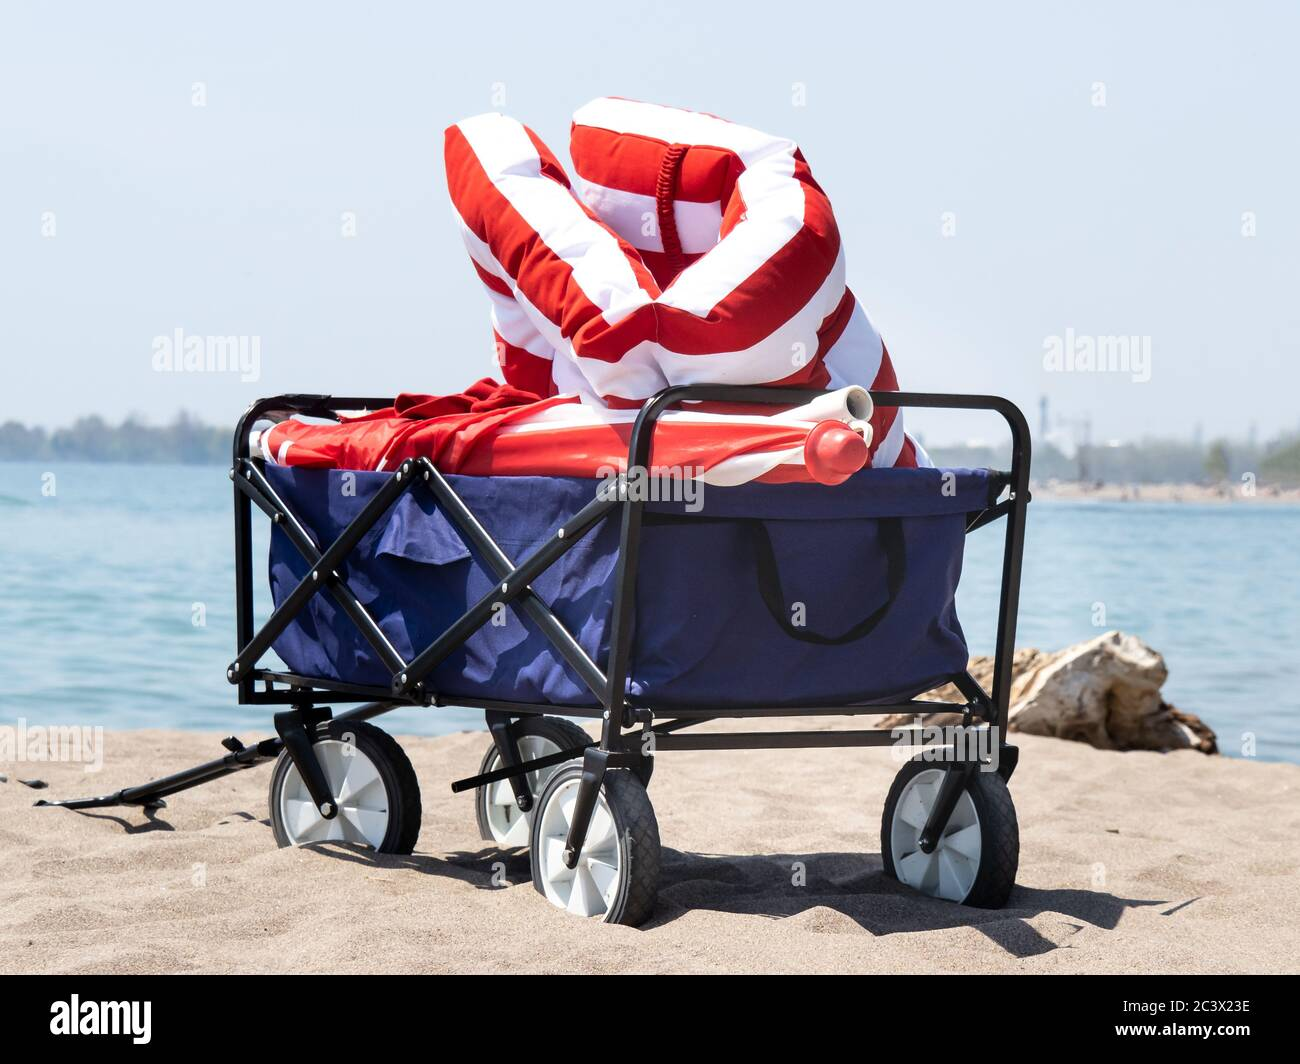 A Folding Beach Wagon On The Sand Filled With Red Cushions And An Umbrella Stock Photo Alamy